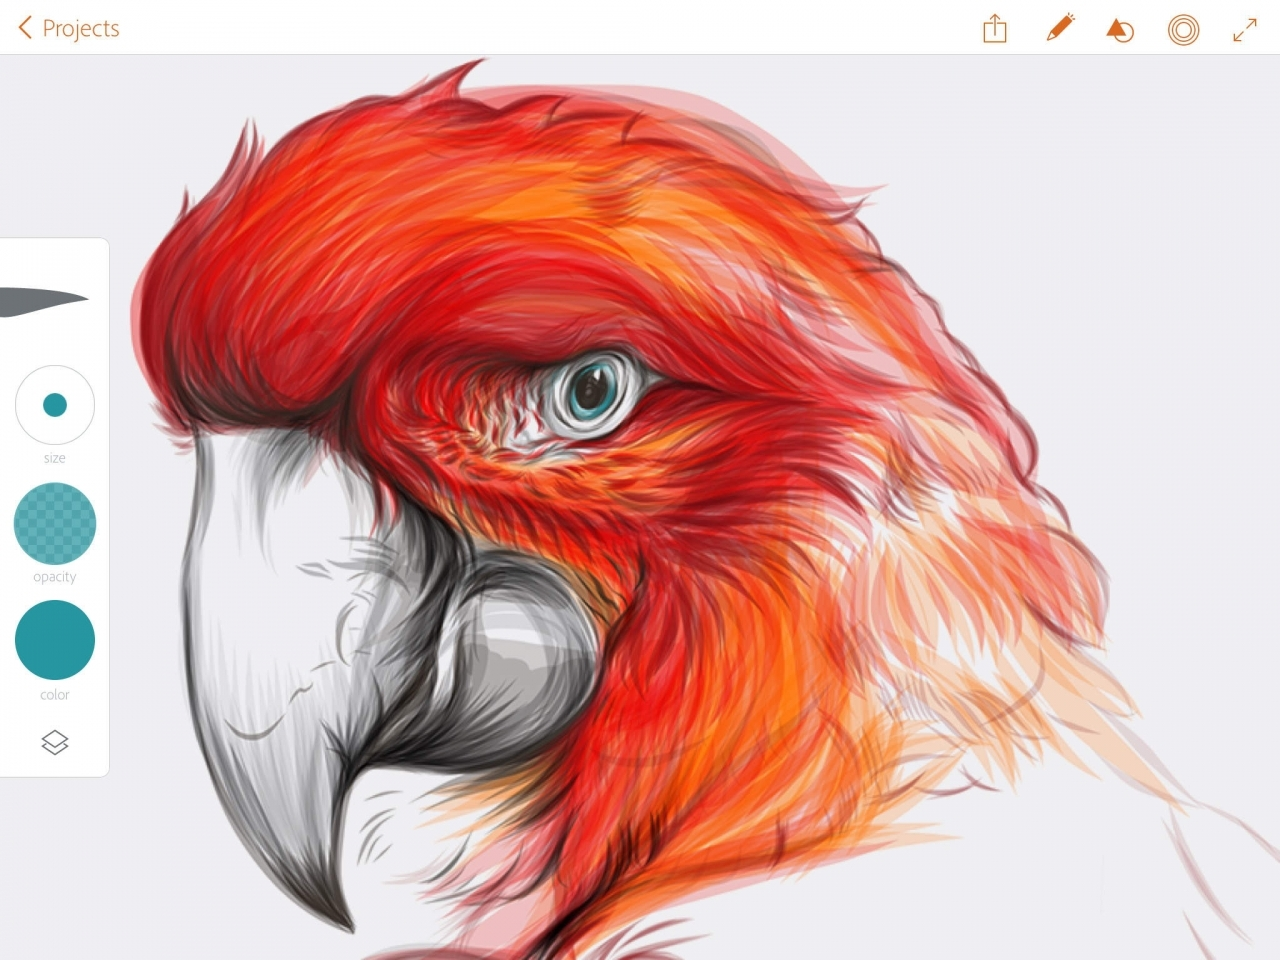 1280x960 New Adobe Illustrator Draw App Now Available For Ipad